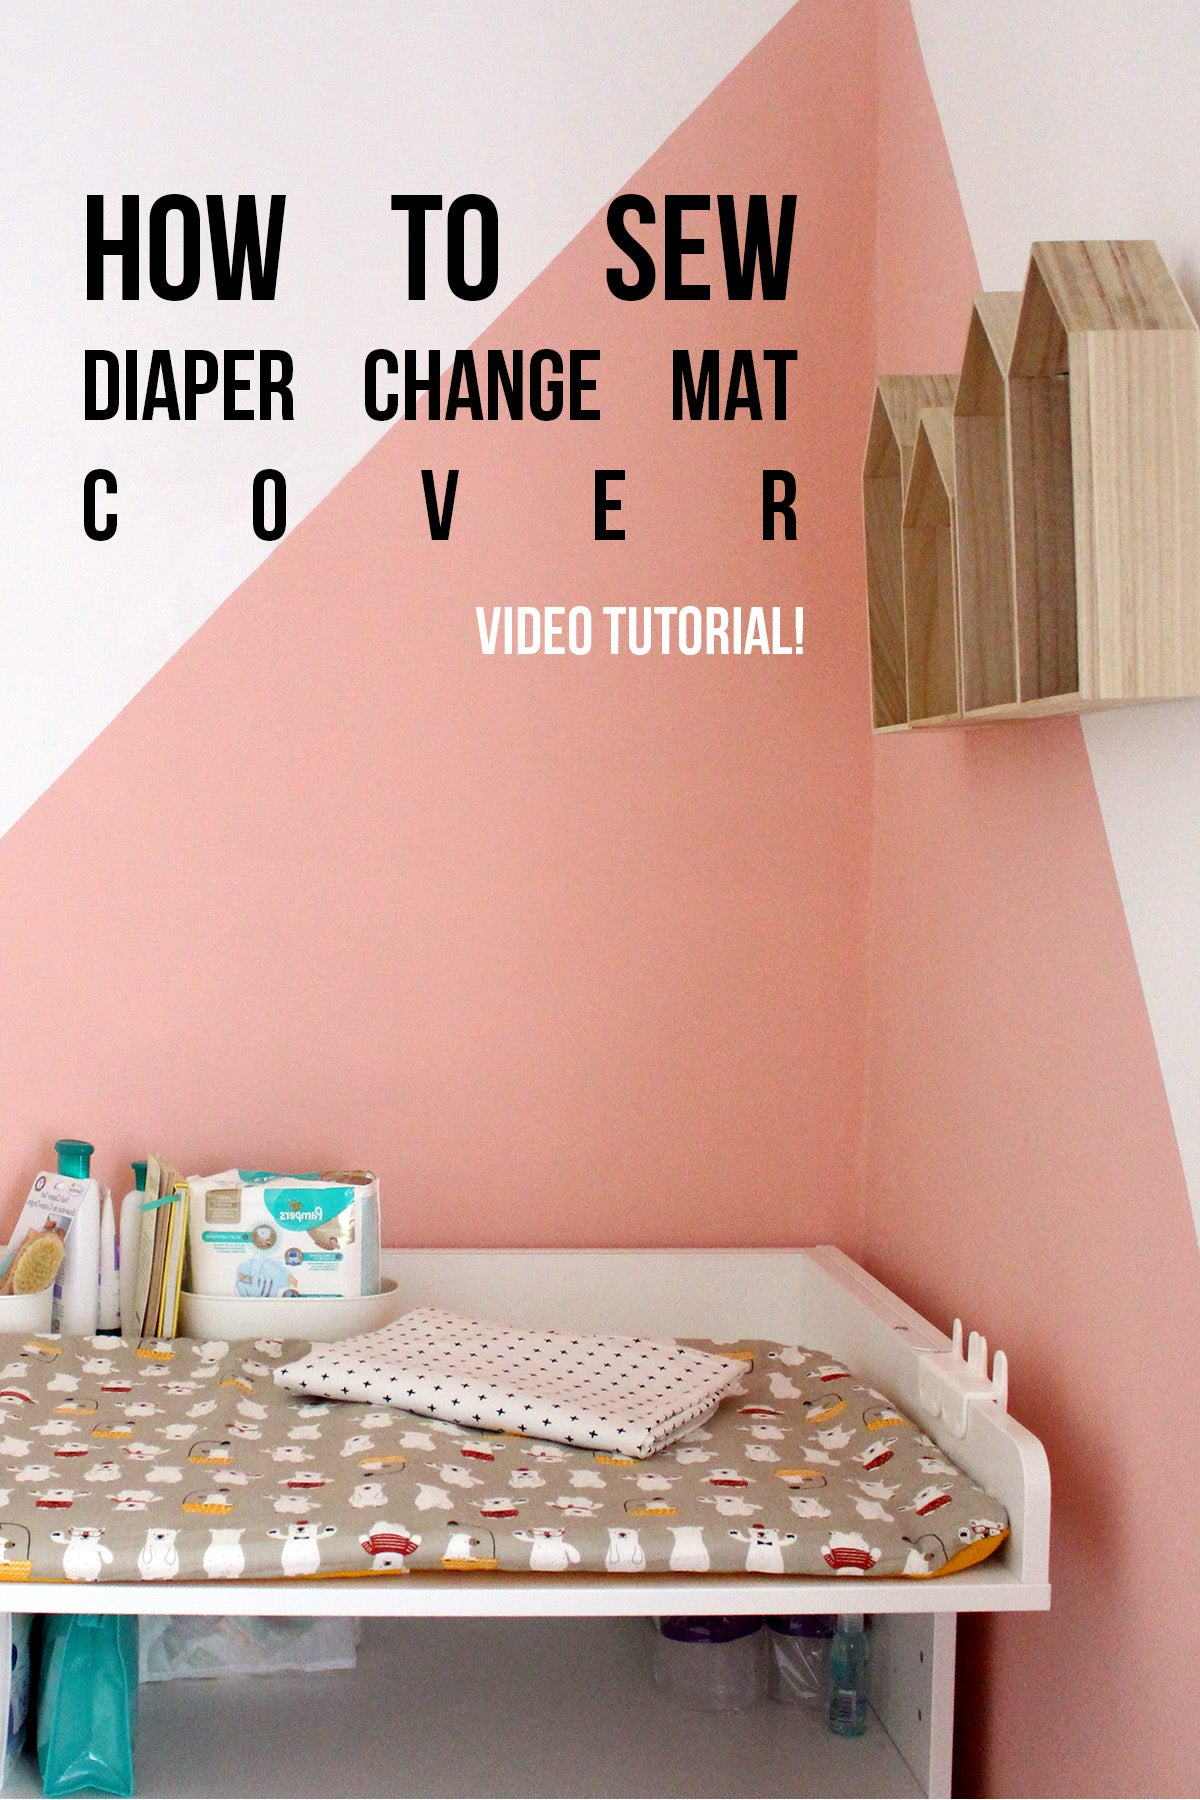 How to sew diaper change mat cover